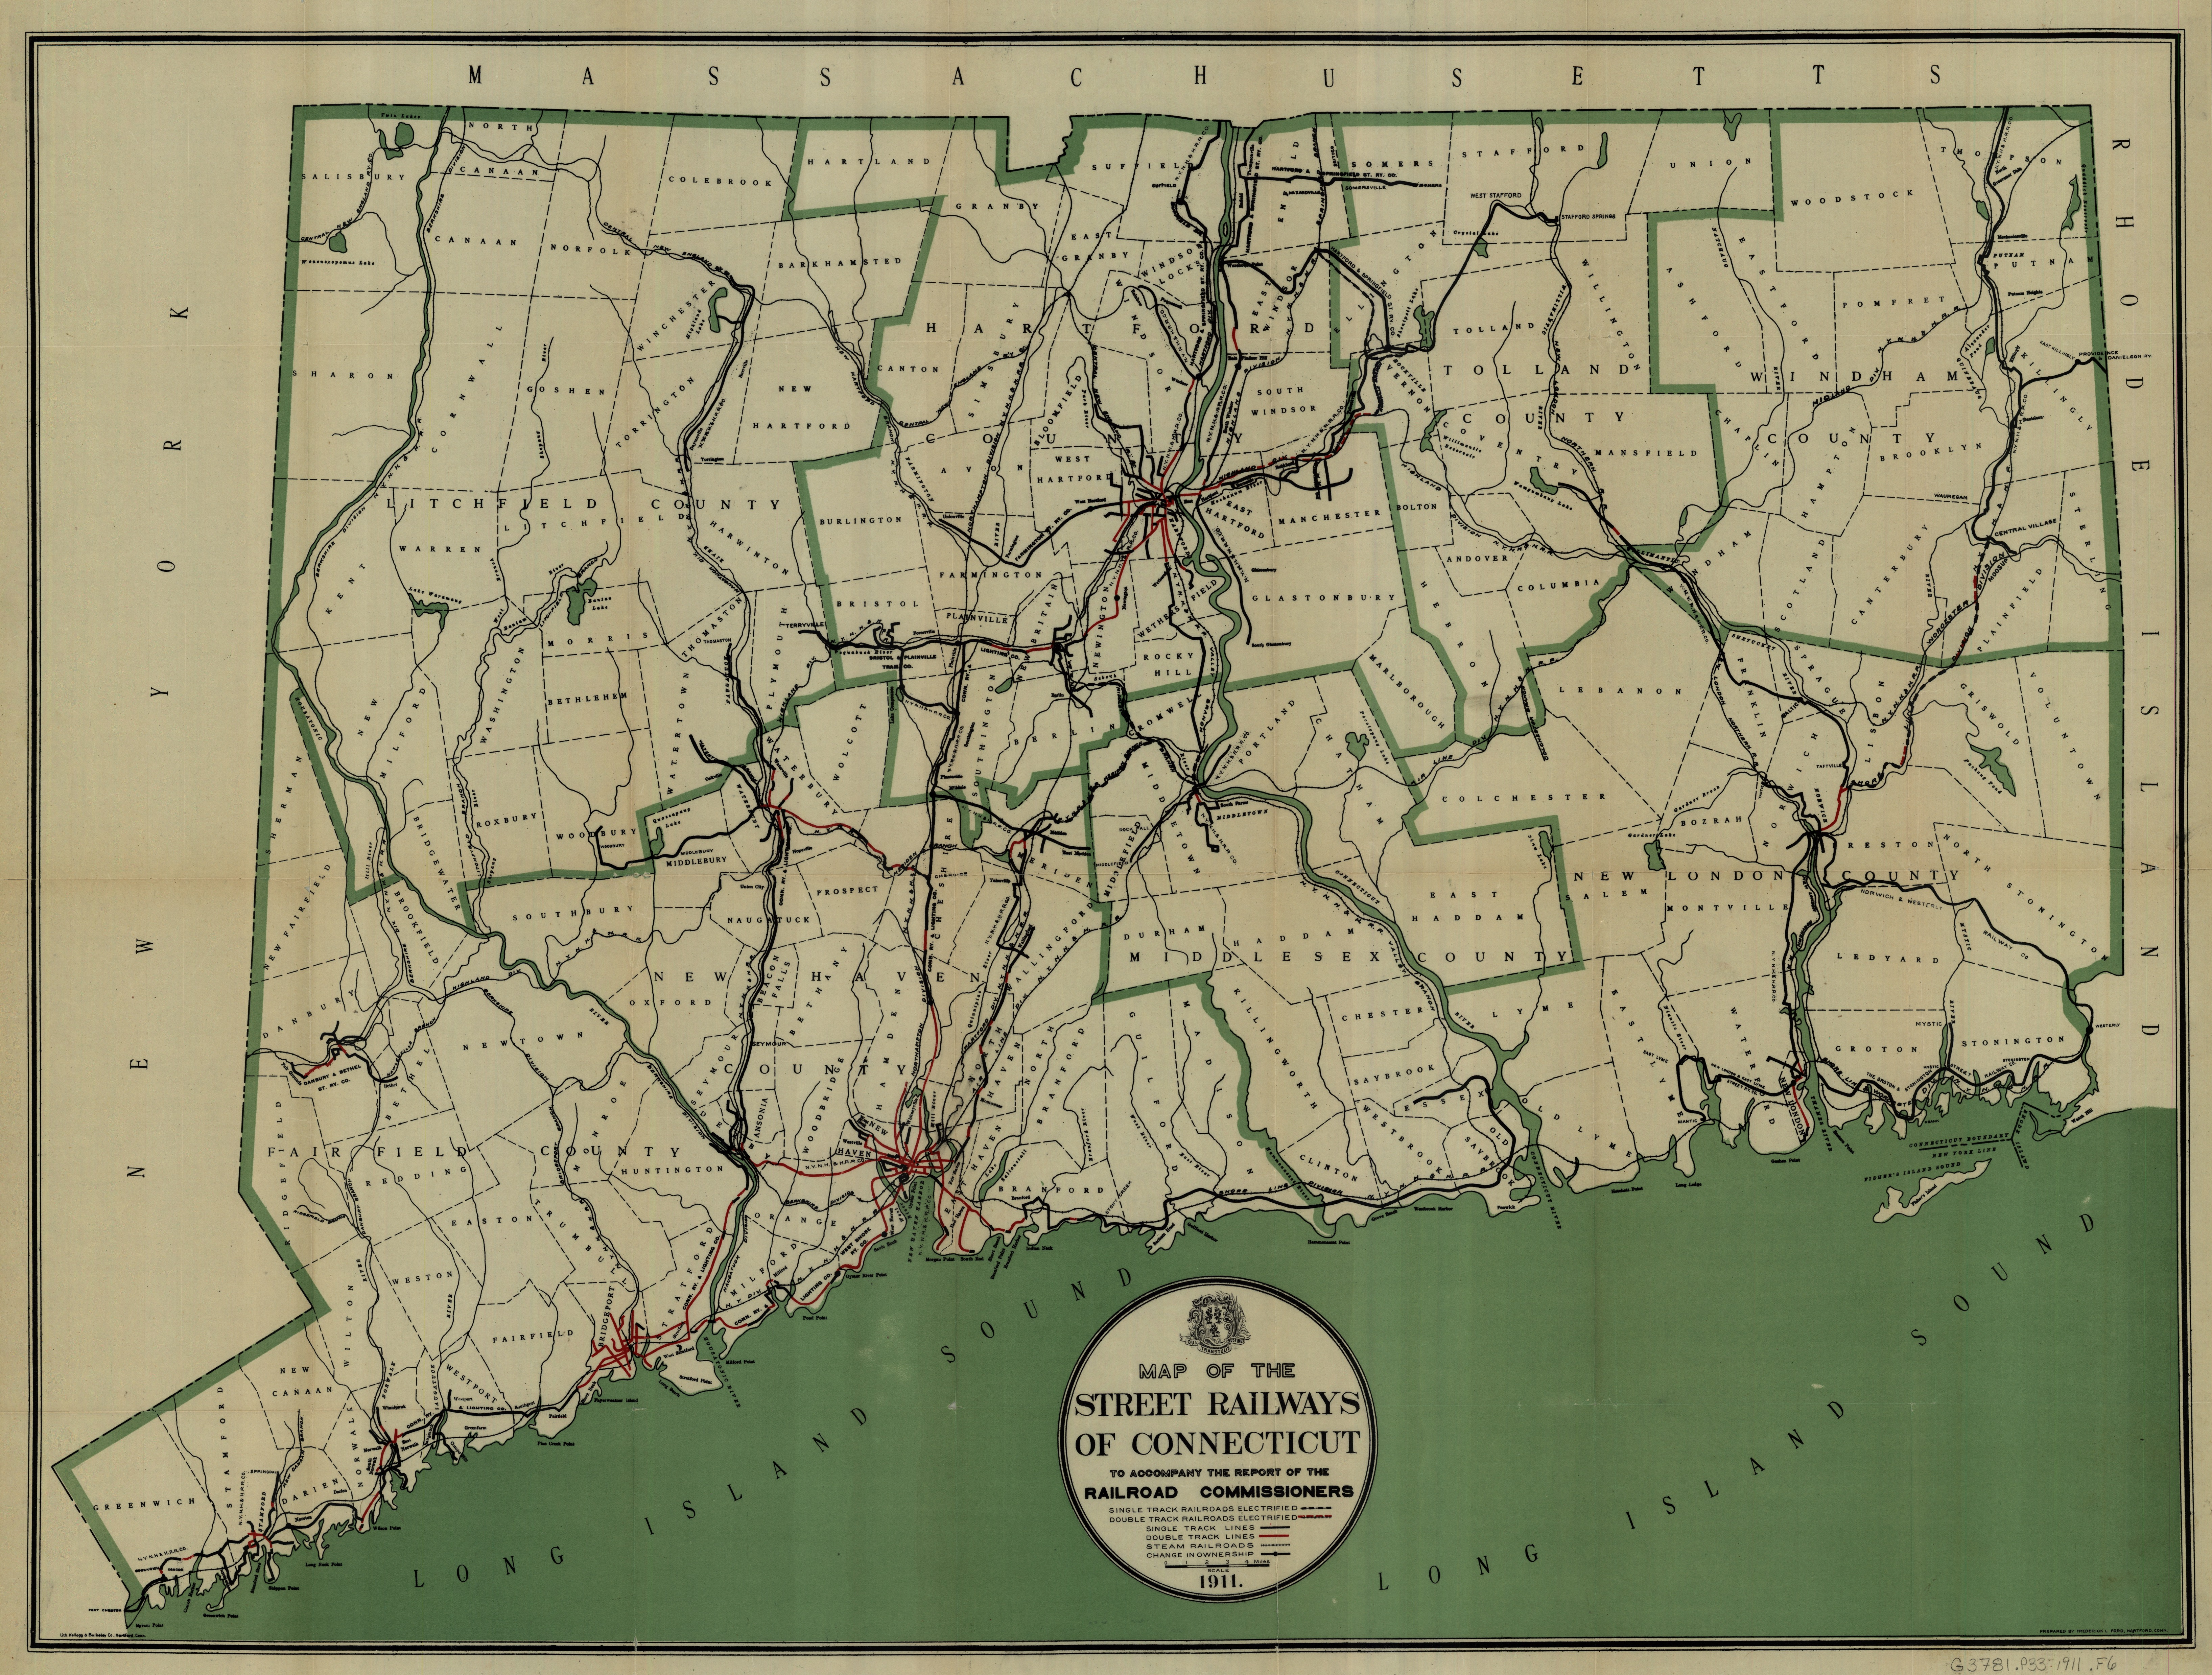 Manchester Historical Society - Road map of connecticut